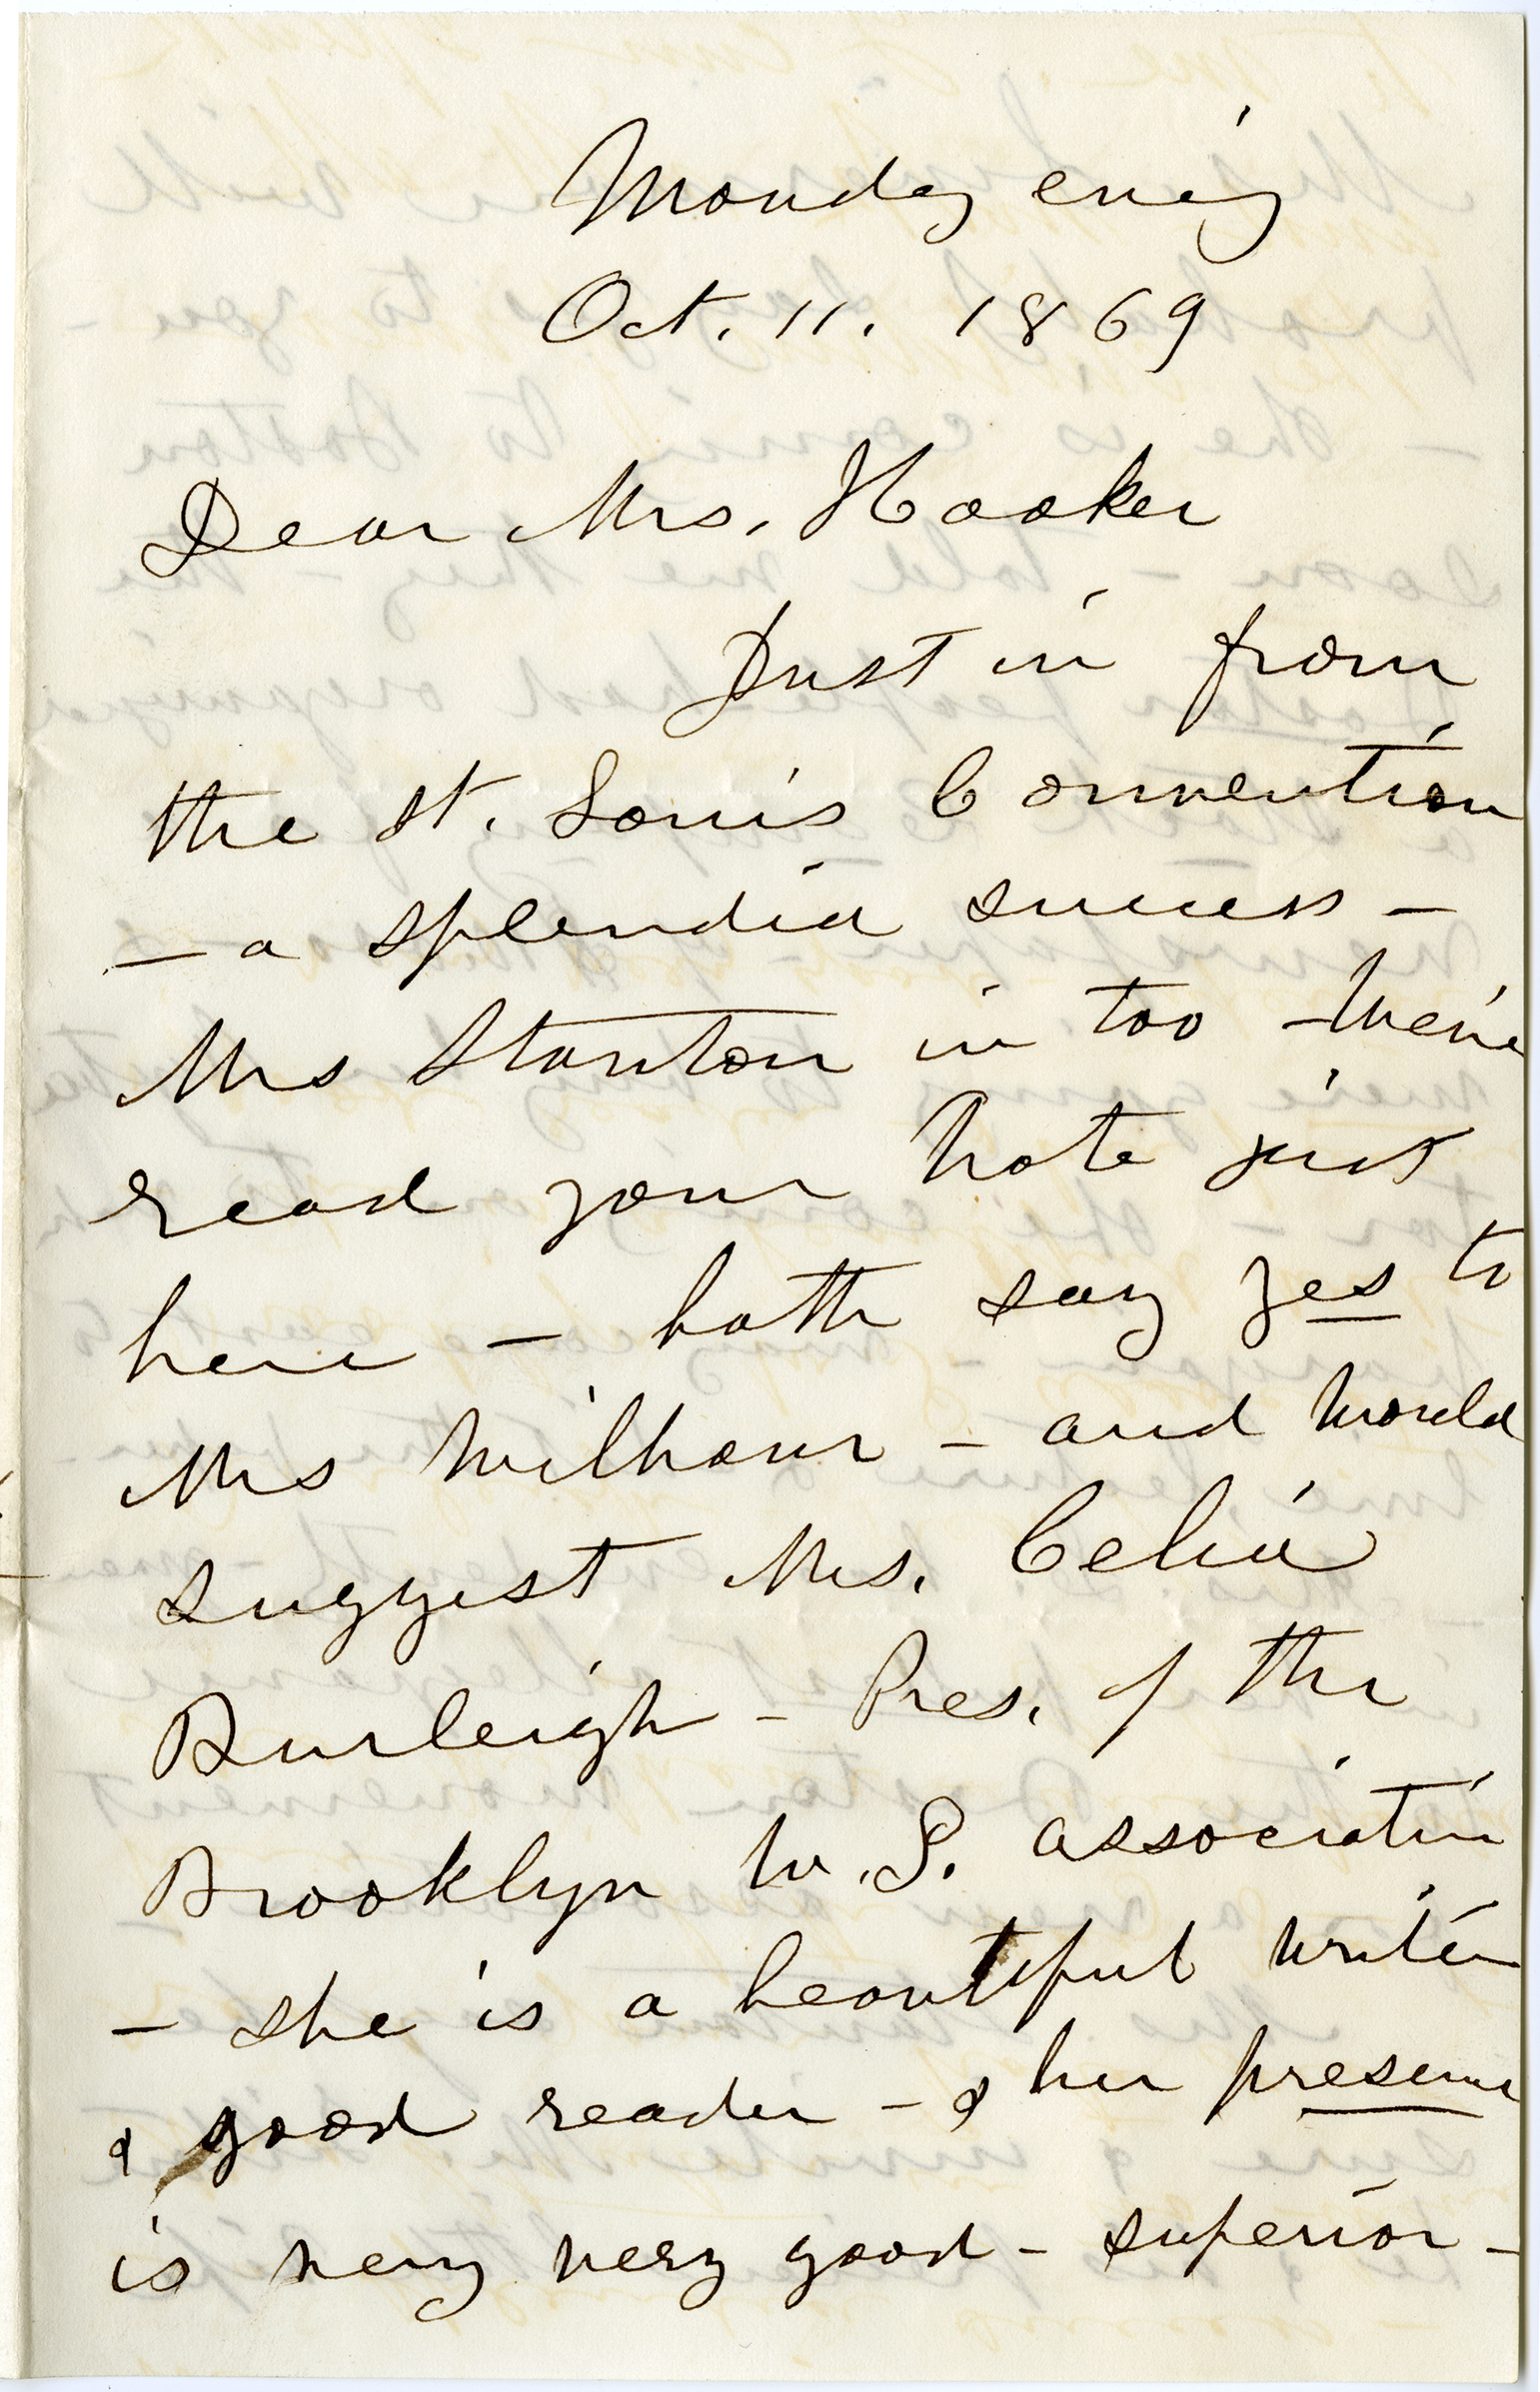 The 1st page of a letter from Susan B. Anthony to Isabella Beecher Hooker